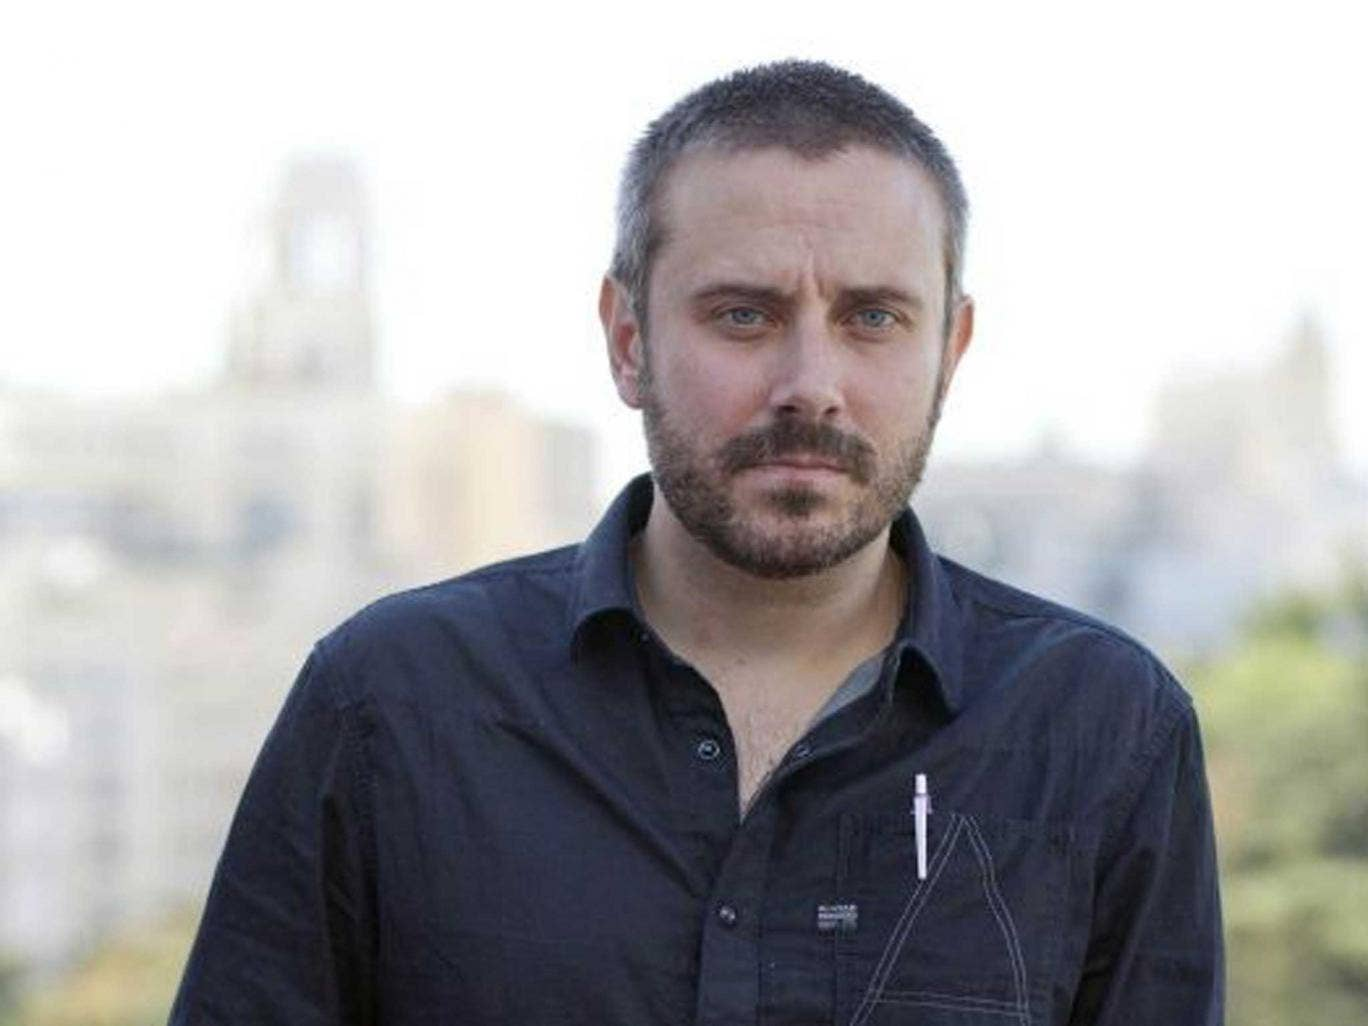 Jeremy Scahill's new award-winning film Dirty Wars, an adaptation of his second book, is coming to cinema screens soon